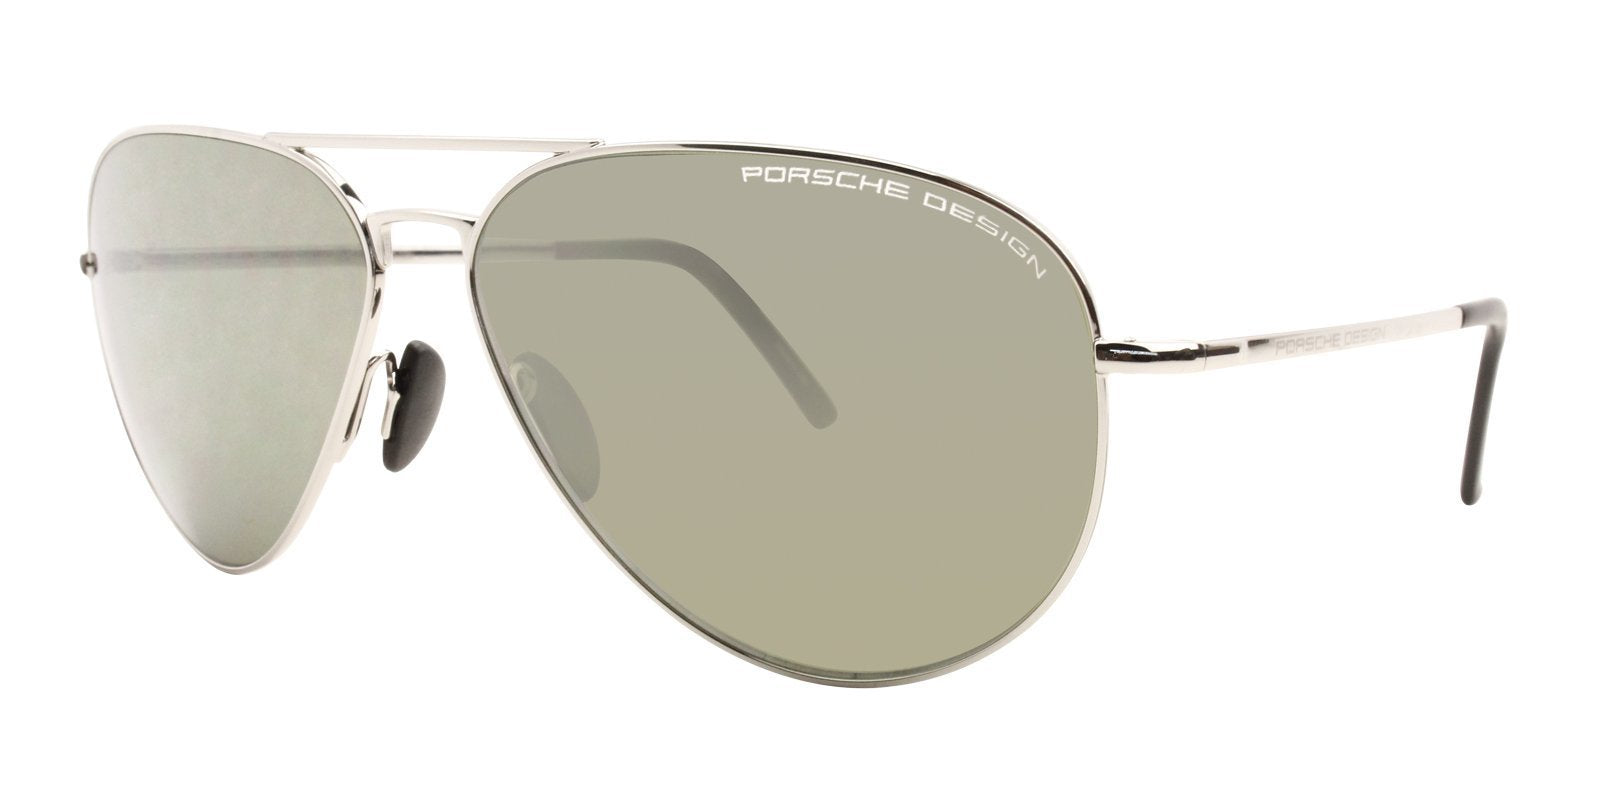 Porsche Design P8507 Silver / Gray Lens Sunglasses-Sunglasses-Designer Eyes